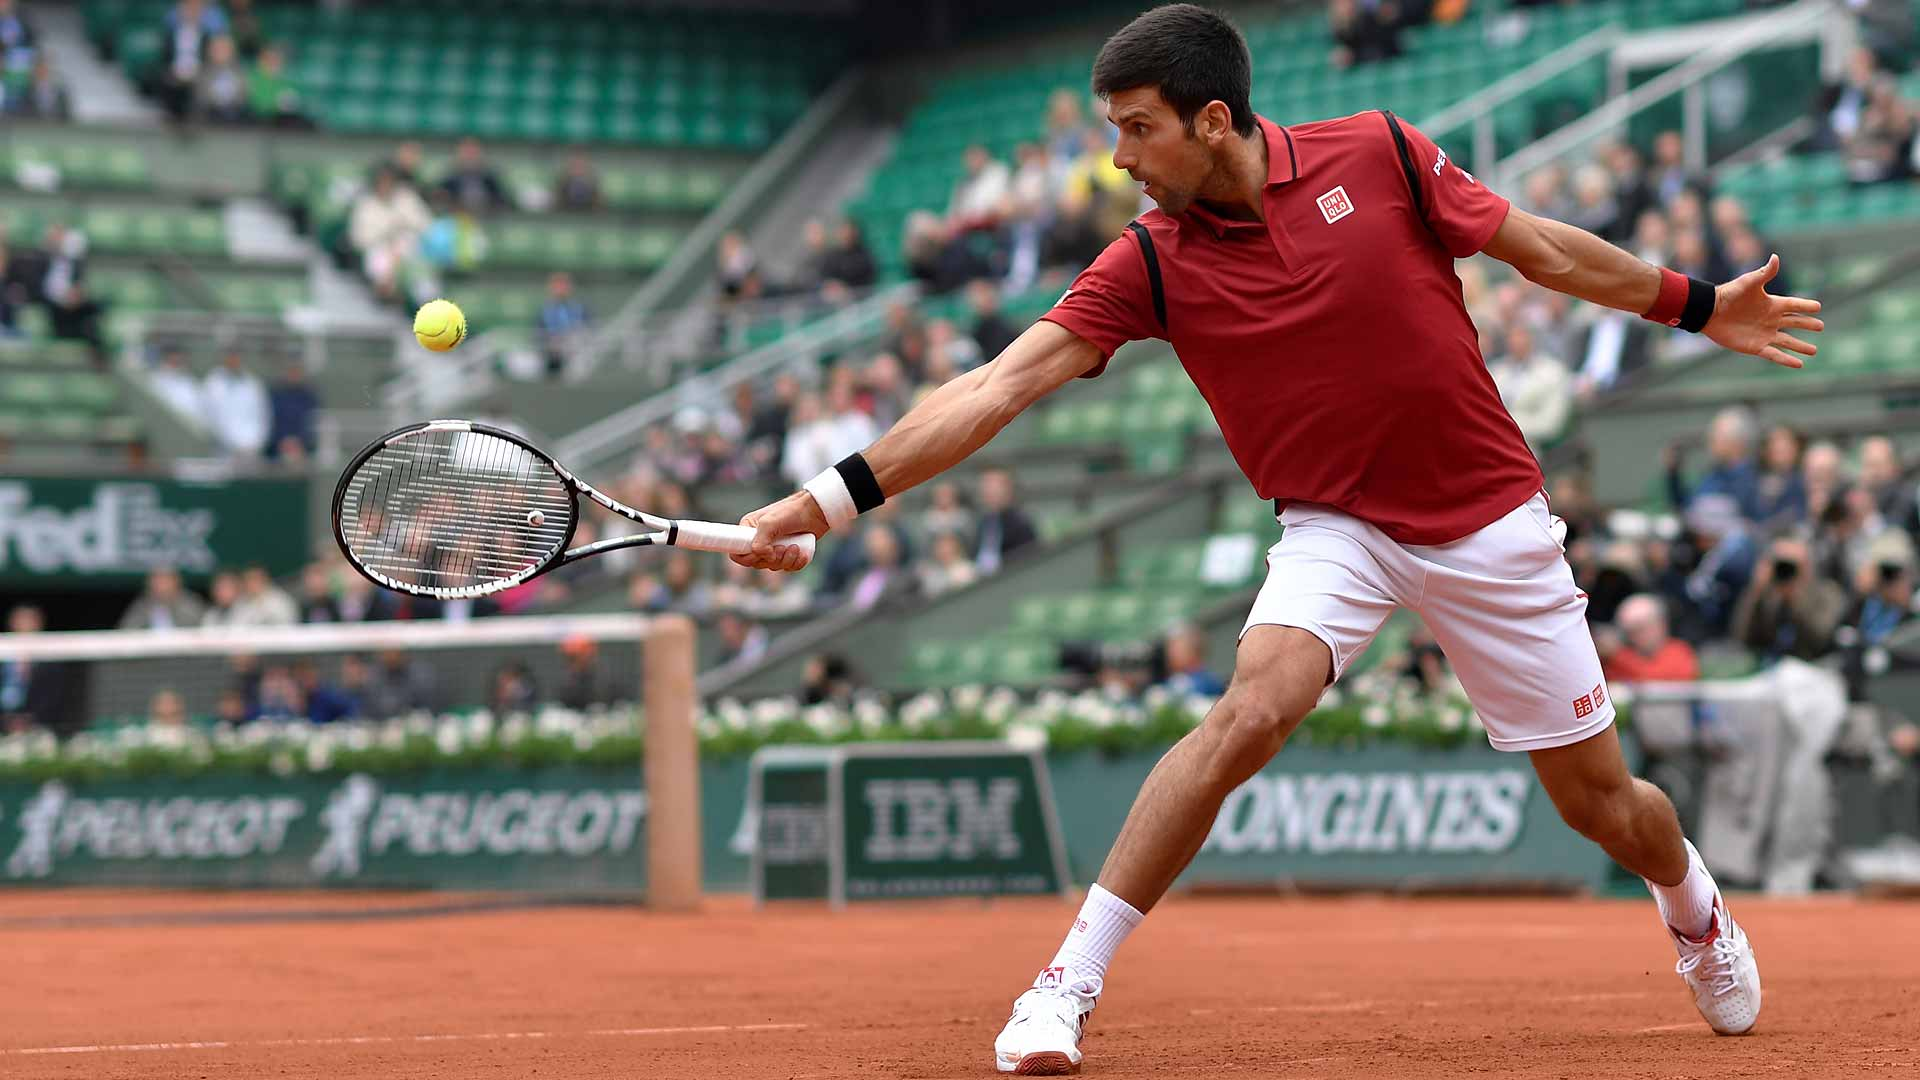 lo stivale pensante tennis record djokovic al roland garros supera i cento milioni di. Black Bedroom Furniture Sets. Home Design Ideas